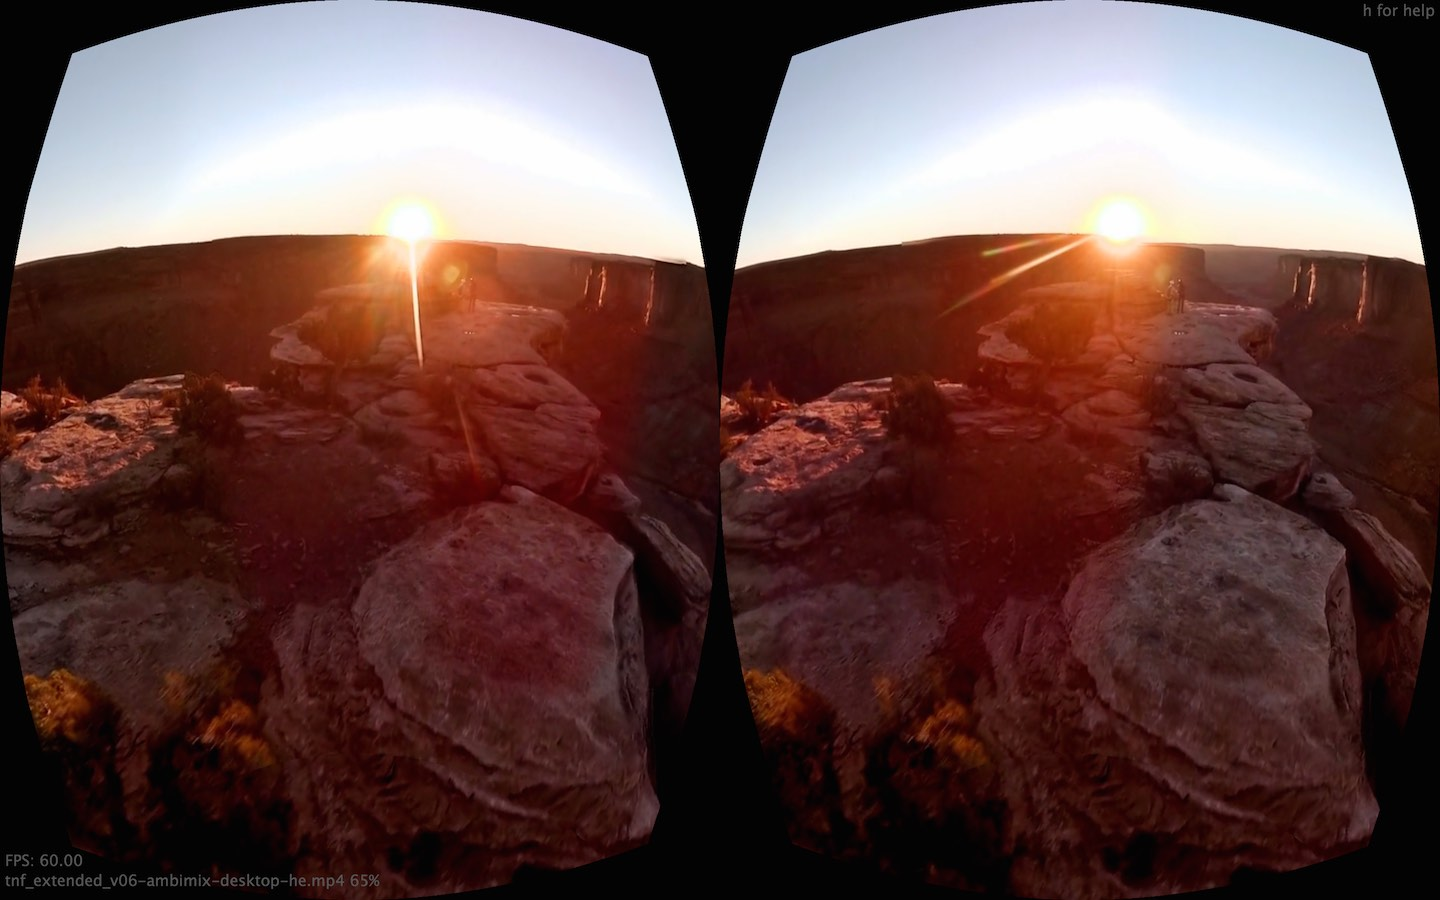 Capturing Virtual Worlds: A Method for Taking 360 Virtual